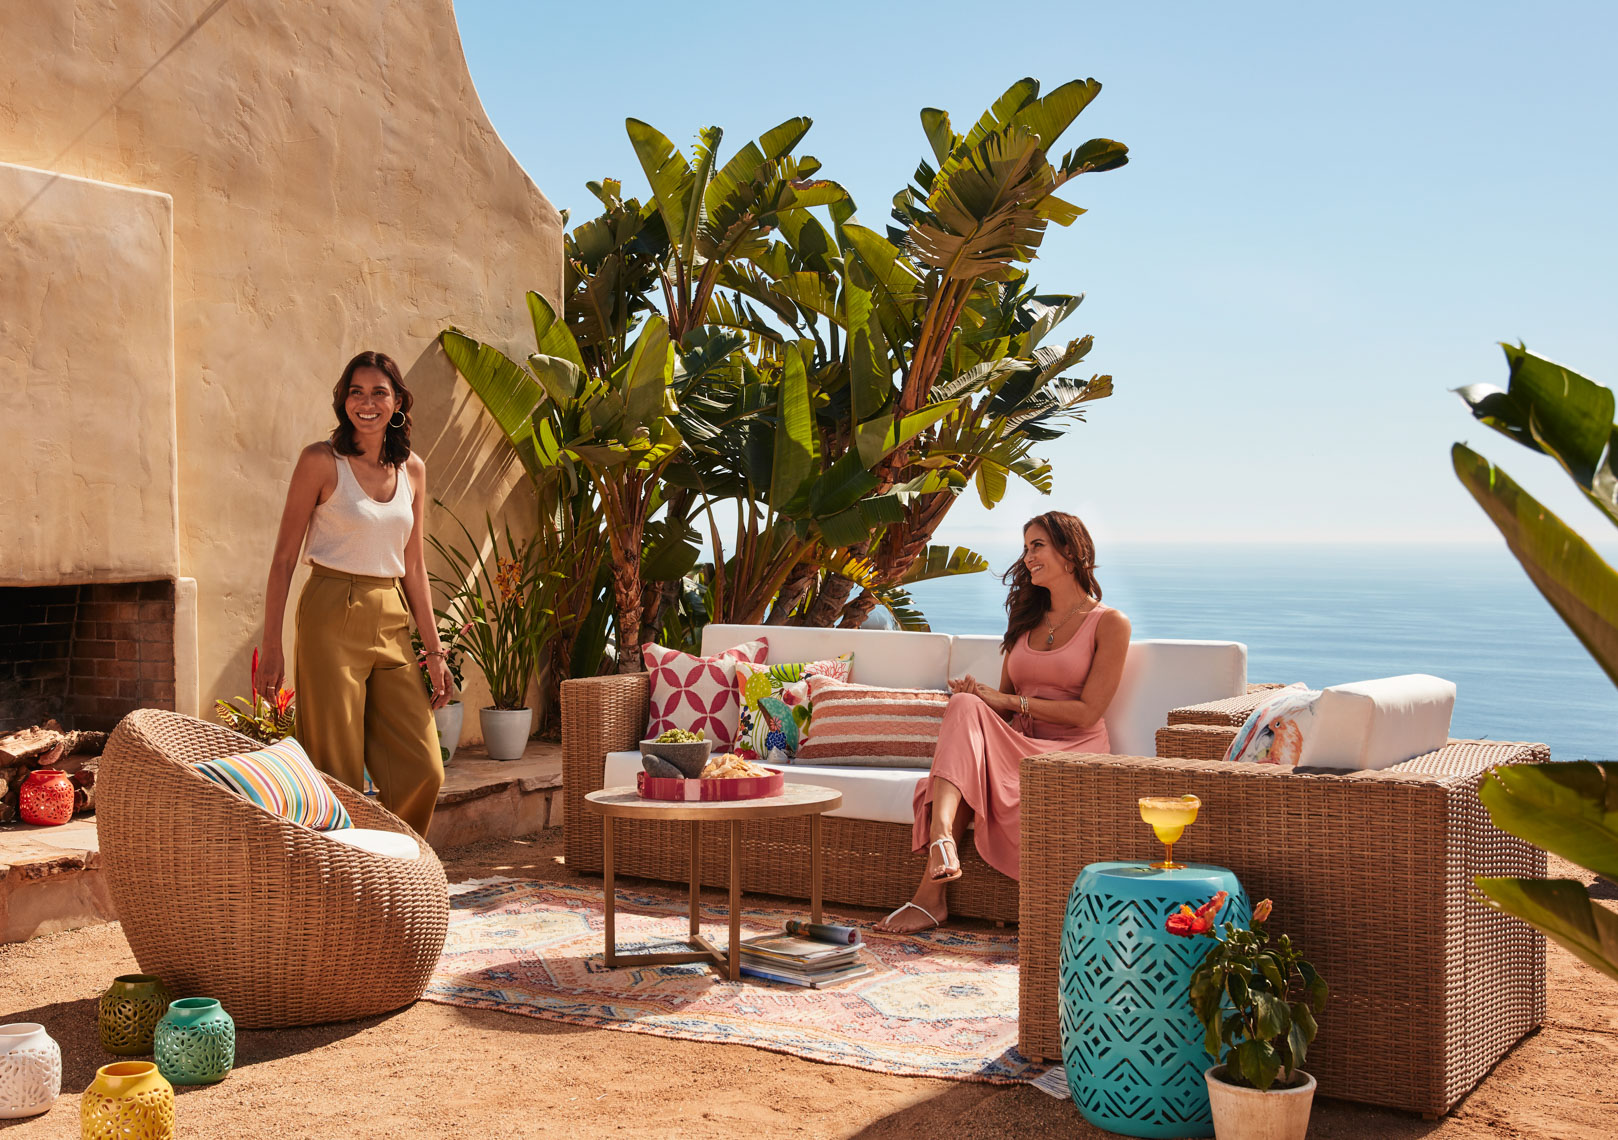 Two women at outdoor seating with wicker furniture and white cushions and rug in the sun overlooking the ocean San Francisco lifestyle photographer